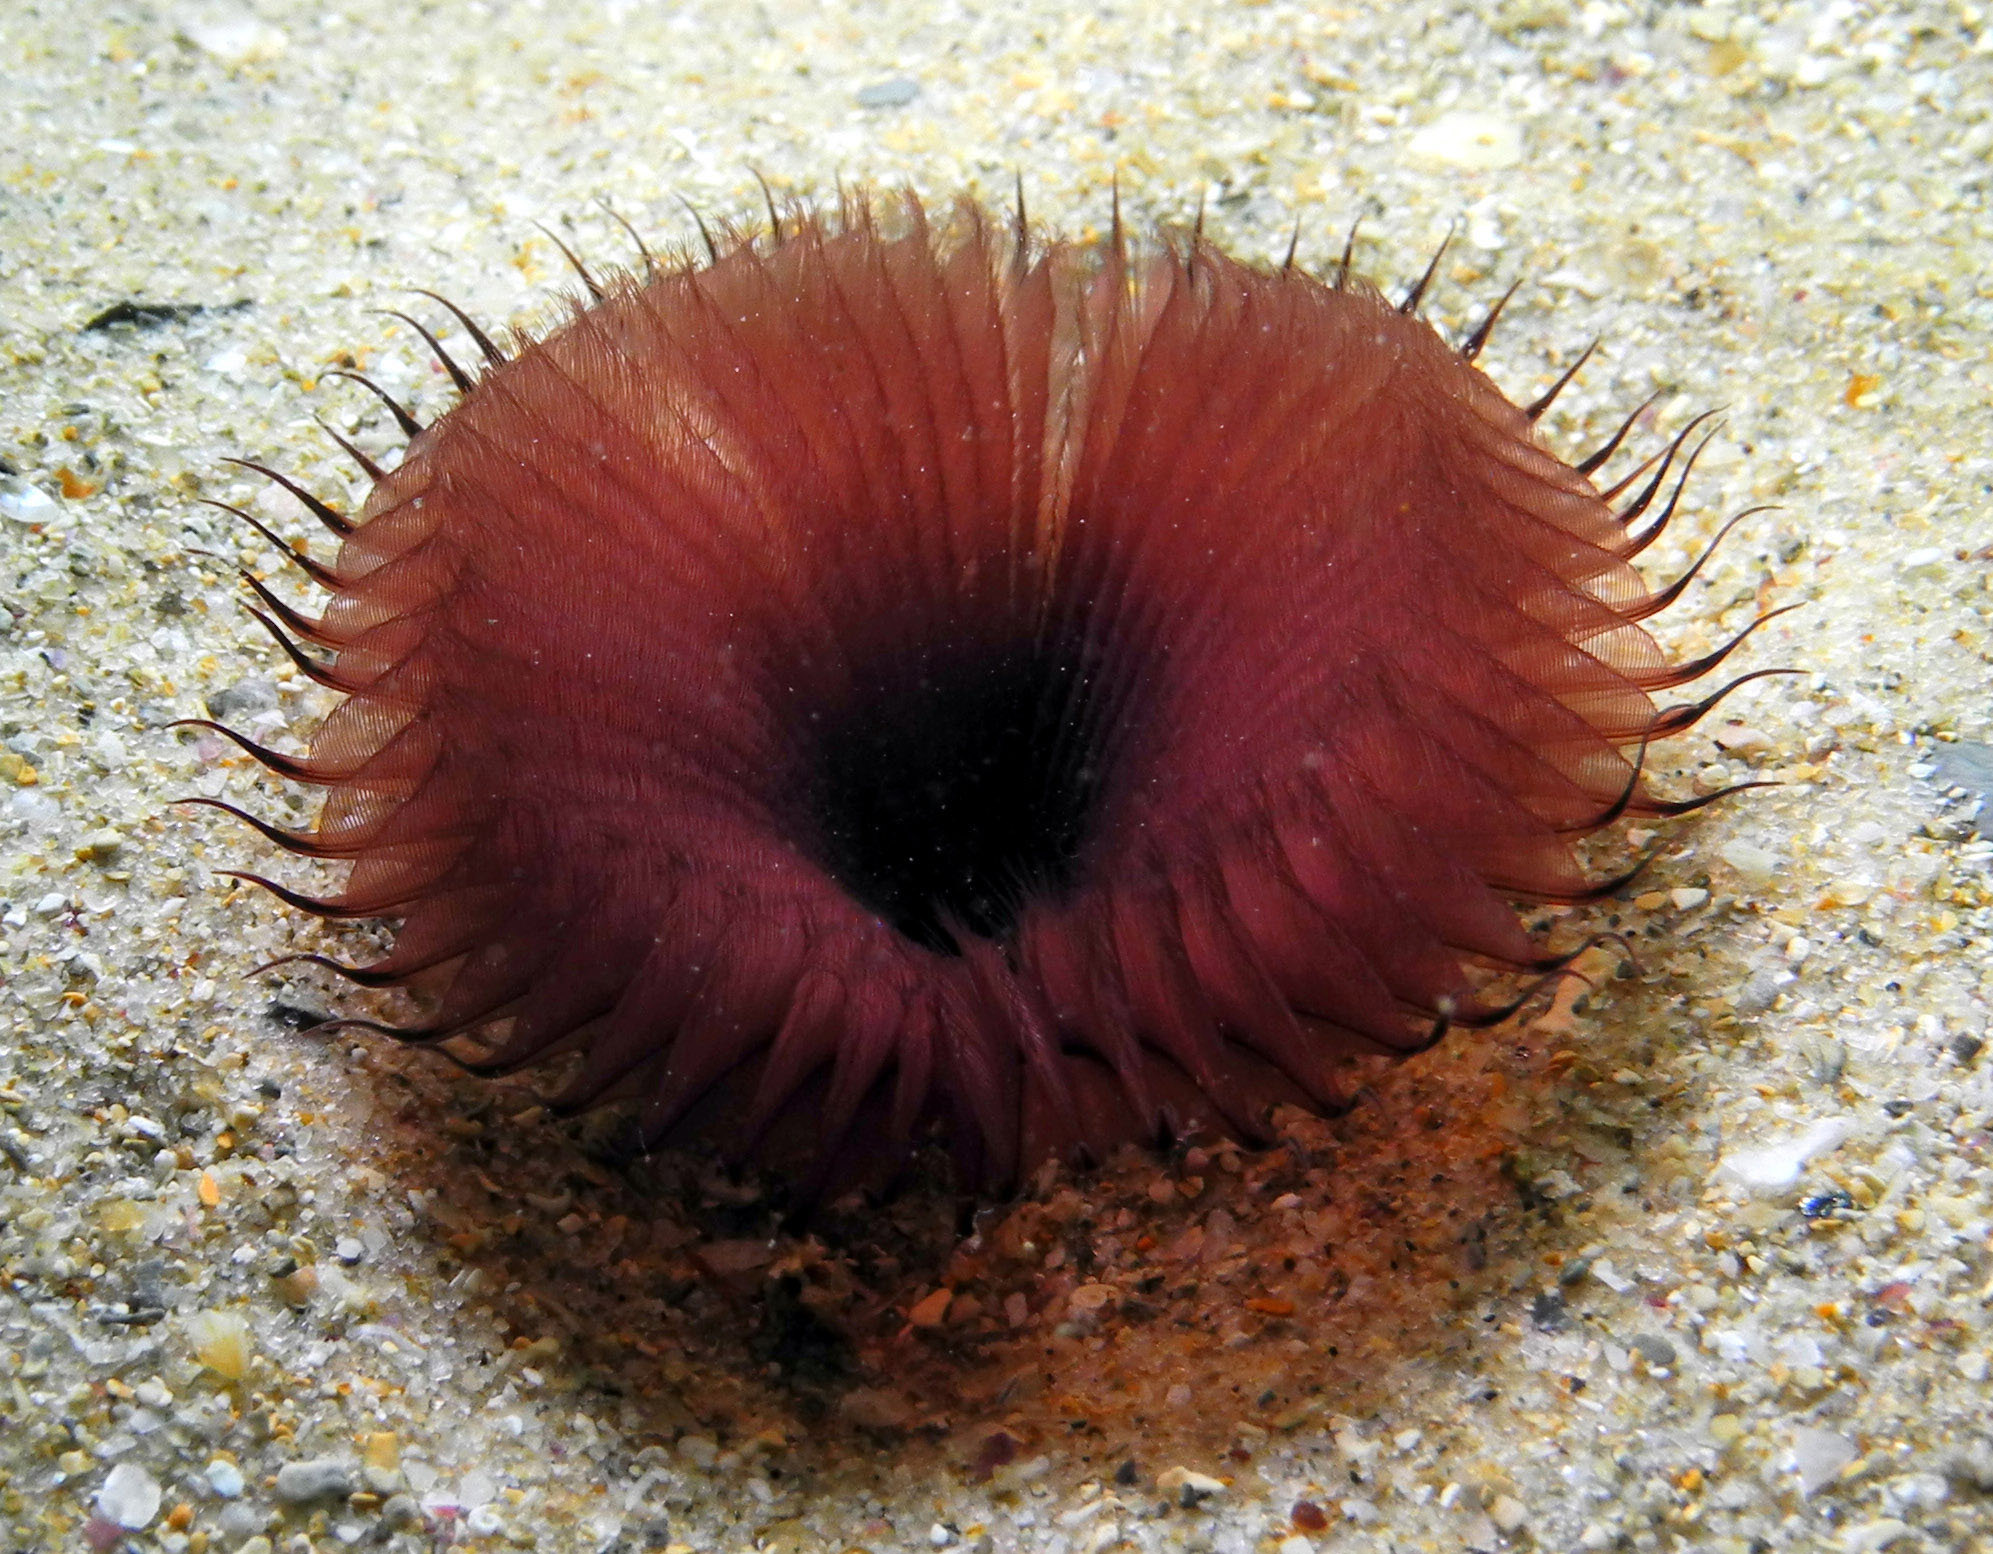 Image of Bristle Worm